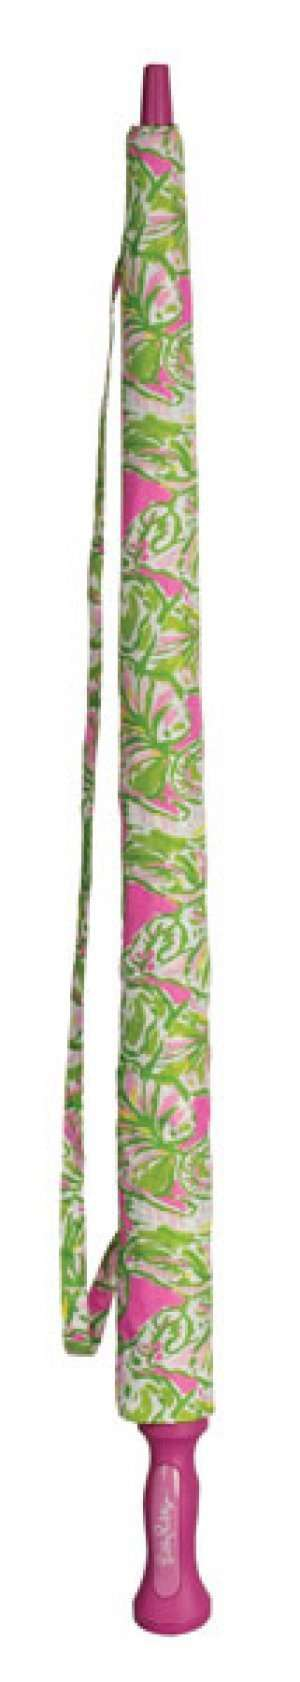 Umbrellas - Large Umbrella In Elephant Ears By Lilly Pulitzer